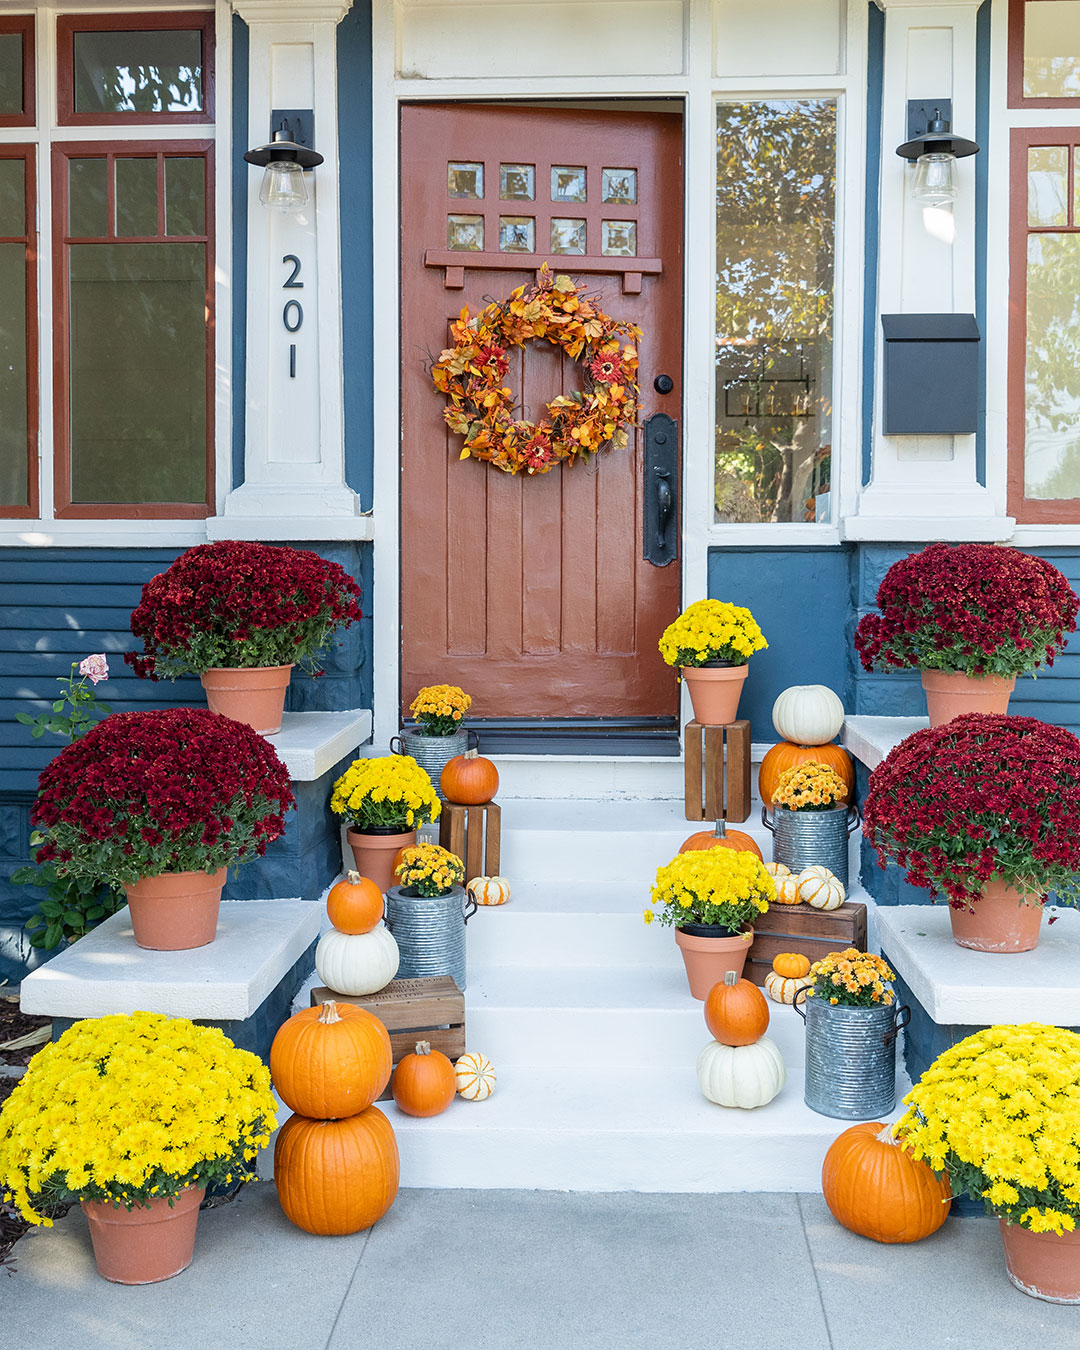 Welcoming porch 2